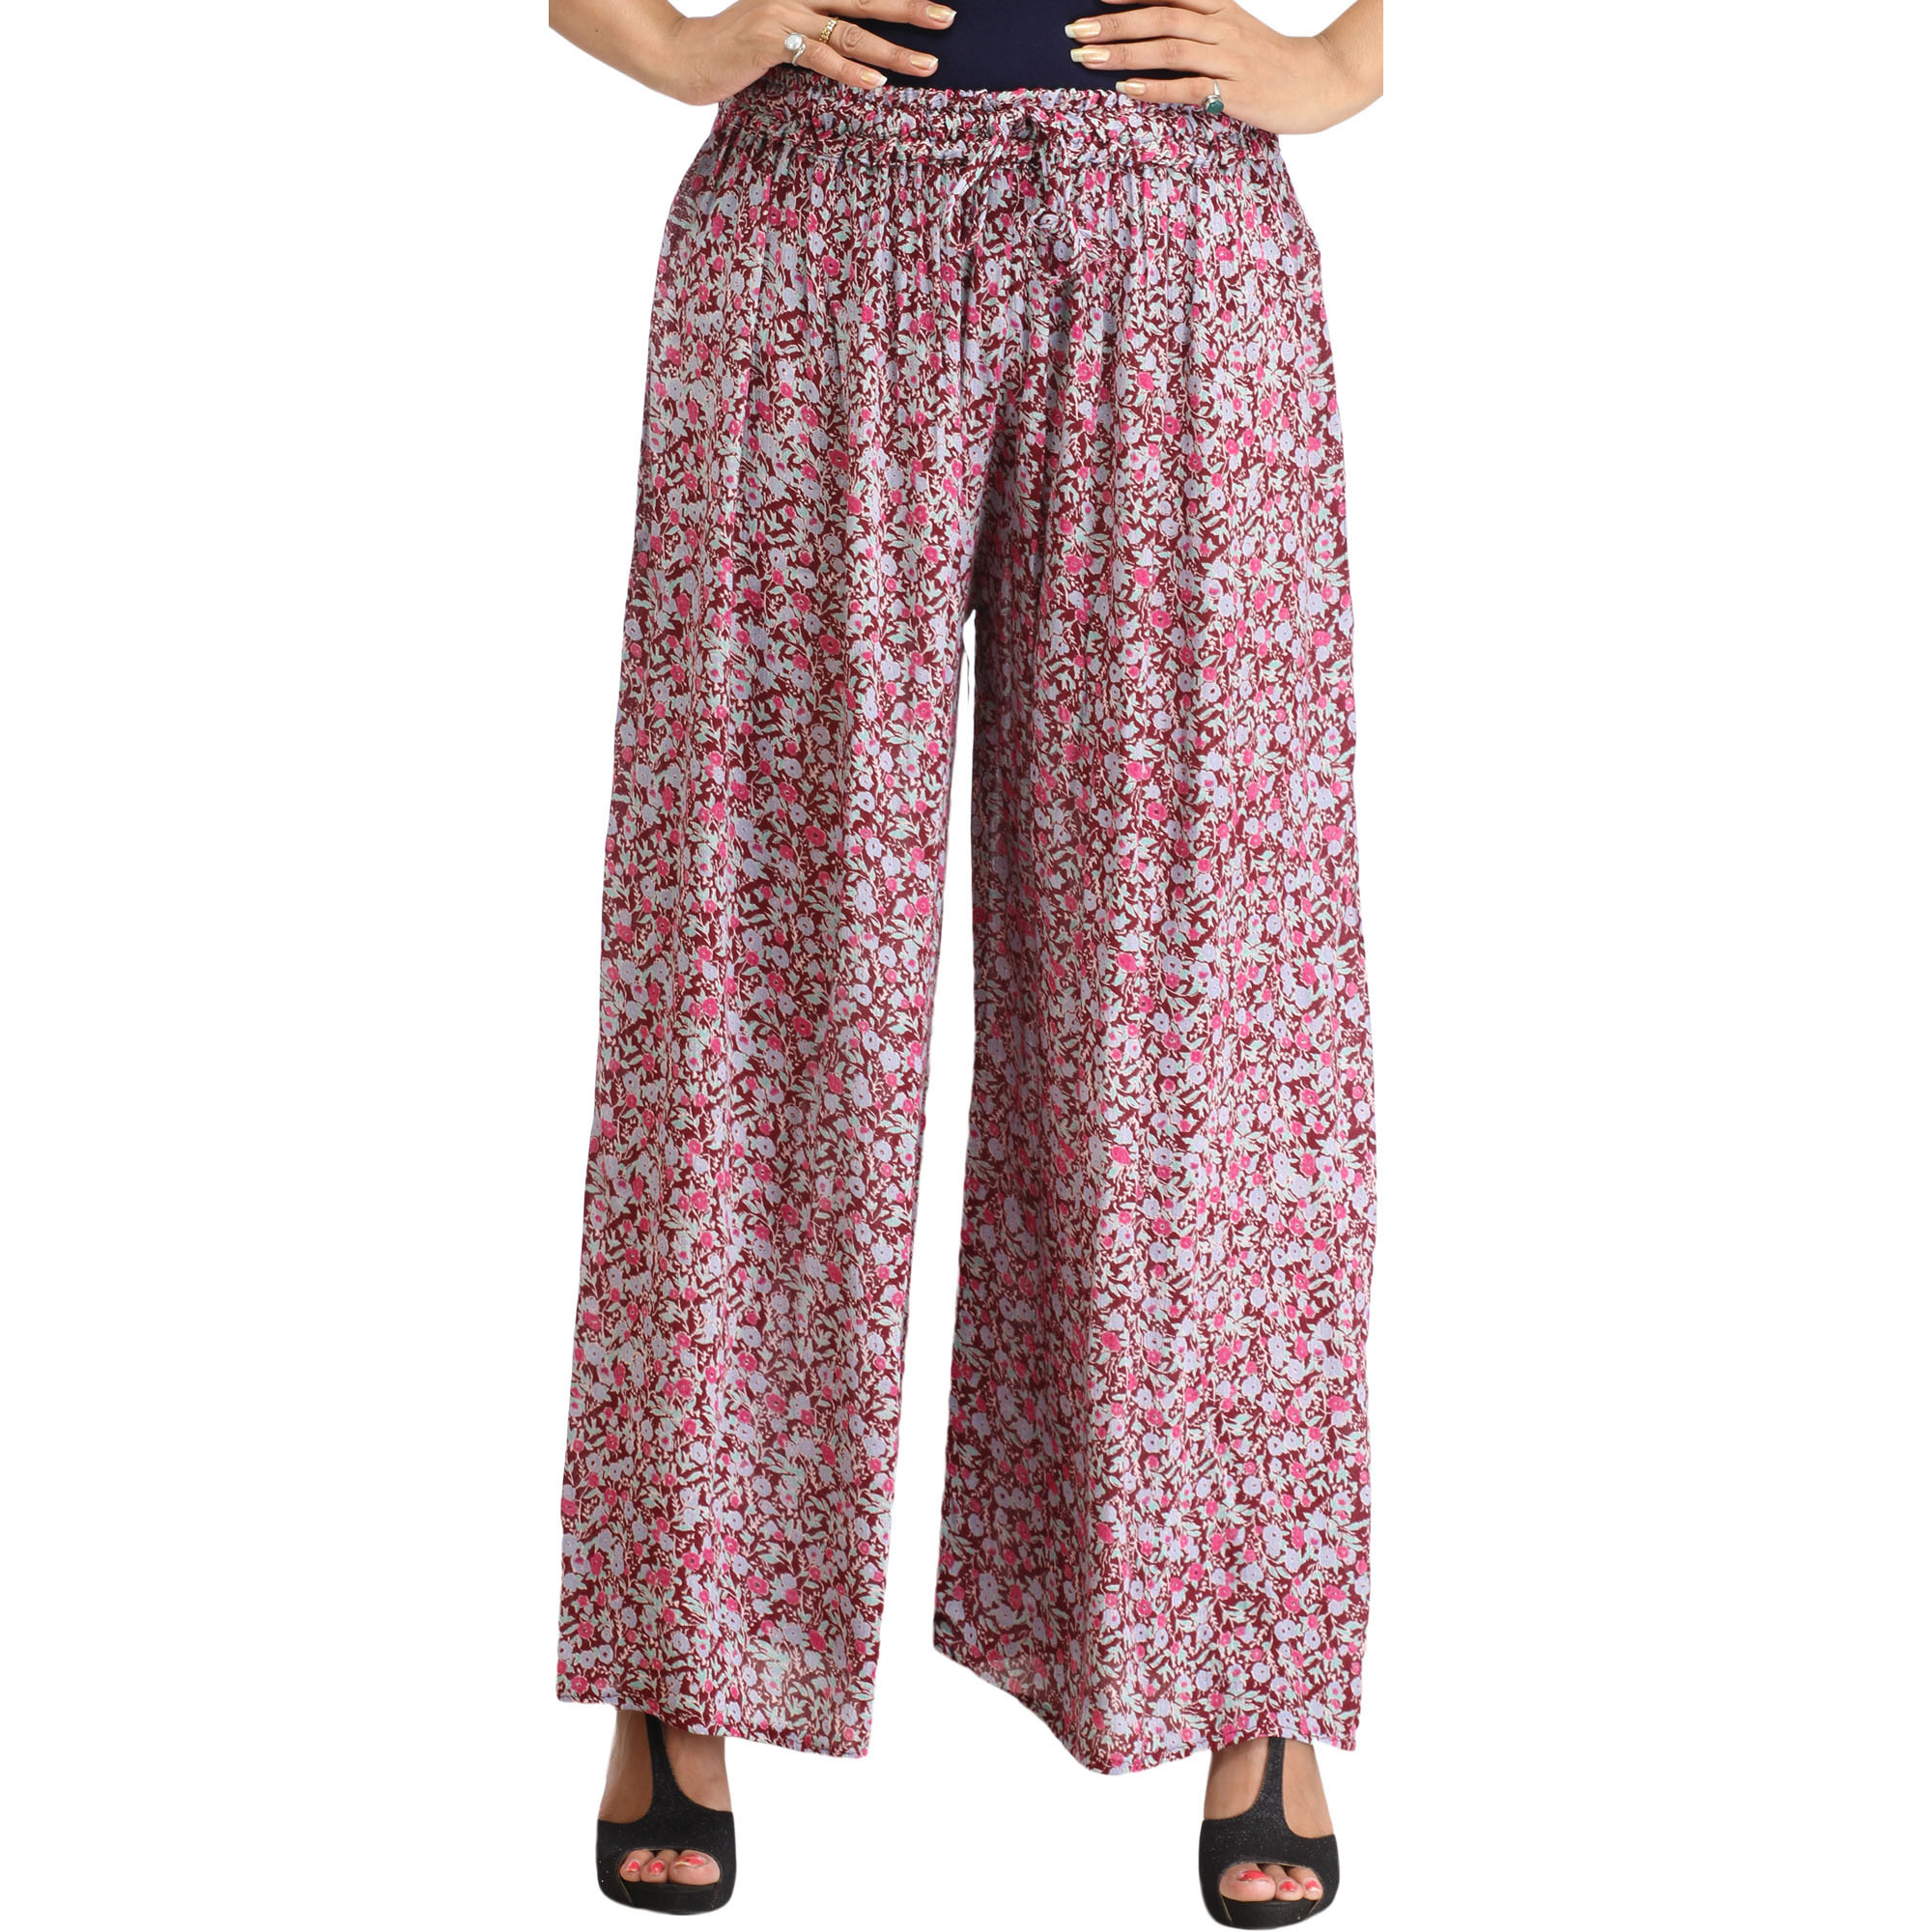 Windsor-Wine Floral Printed Casual Palazzo Pants